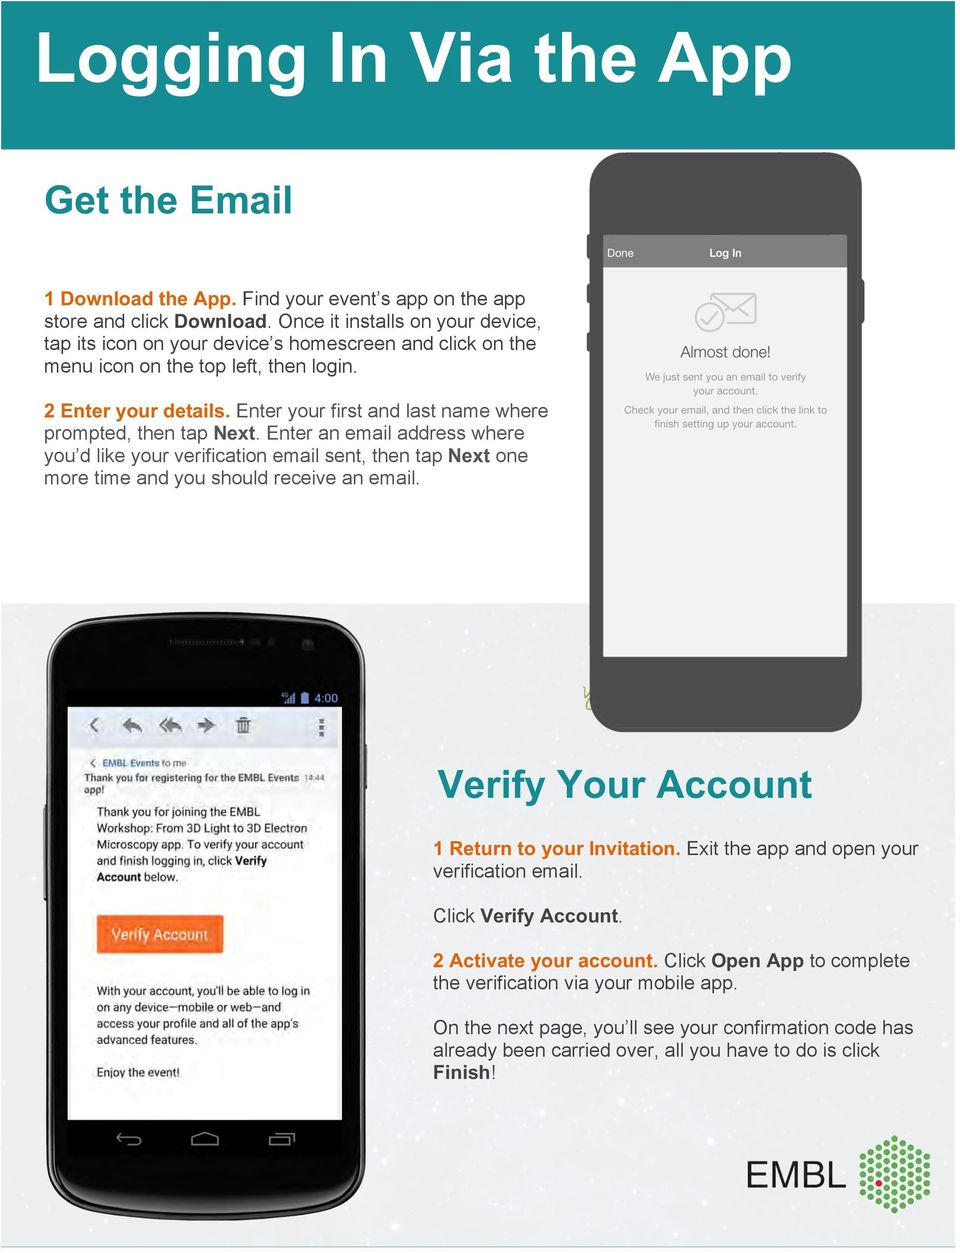 Enter your first and last name where prompted, then tap Next. Enter an email address where you d like your verification email sent, then tap Next one more time and you should receive an email.